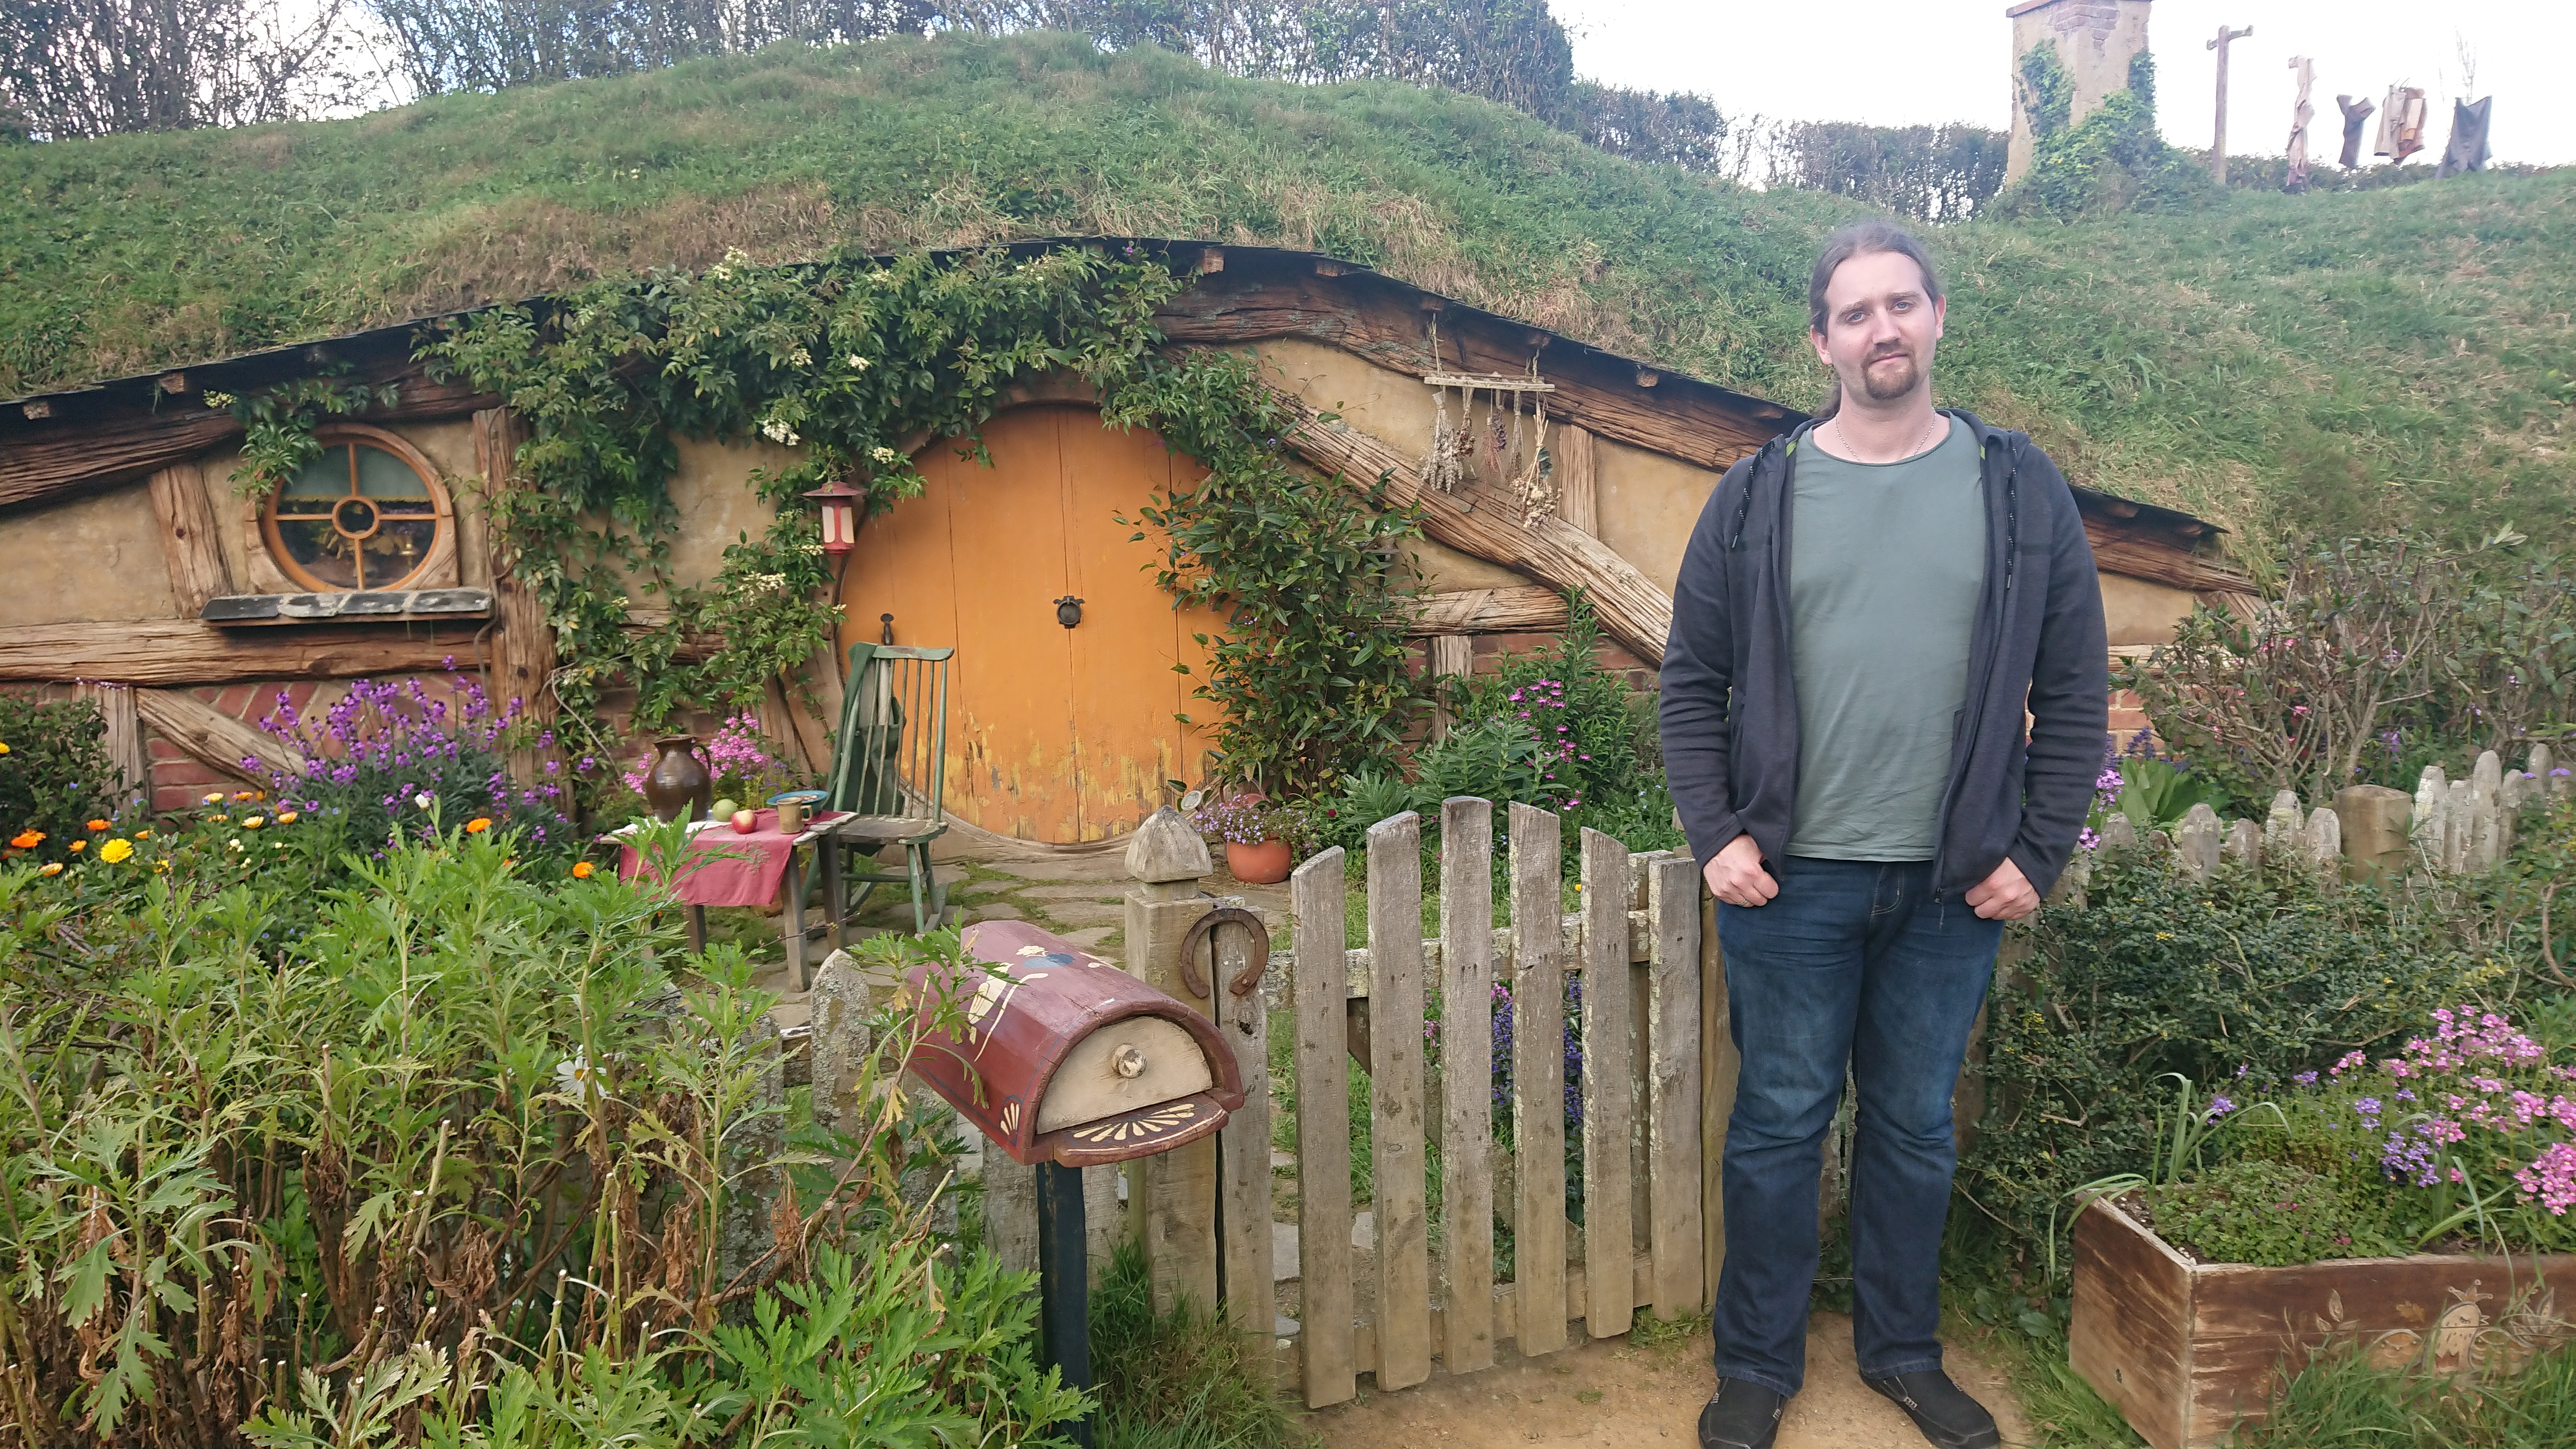 One of the many Hobbit holes of various sizes